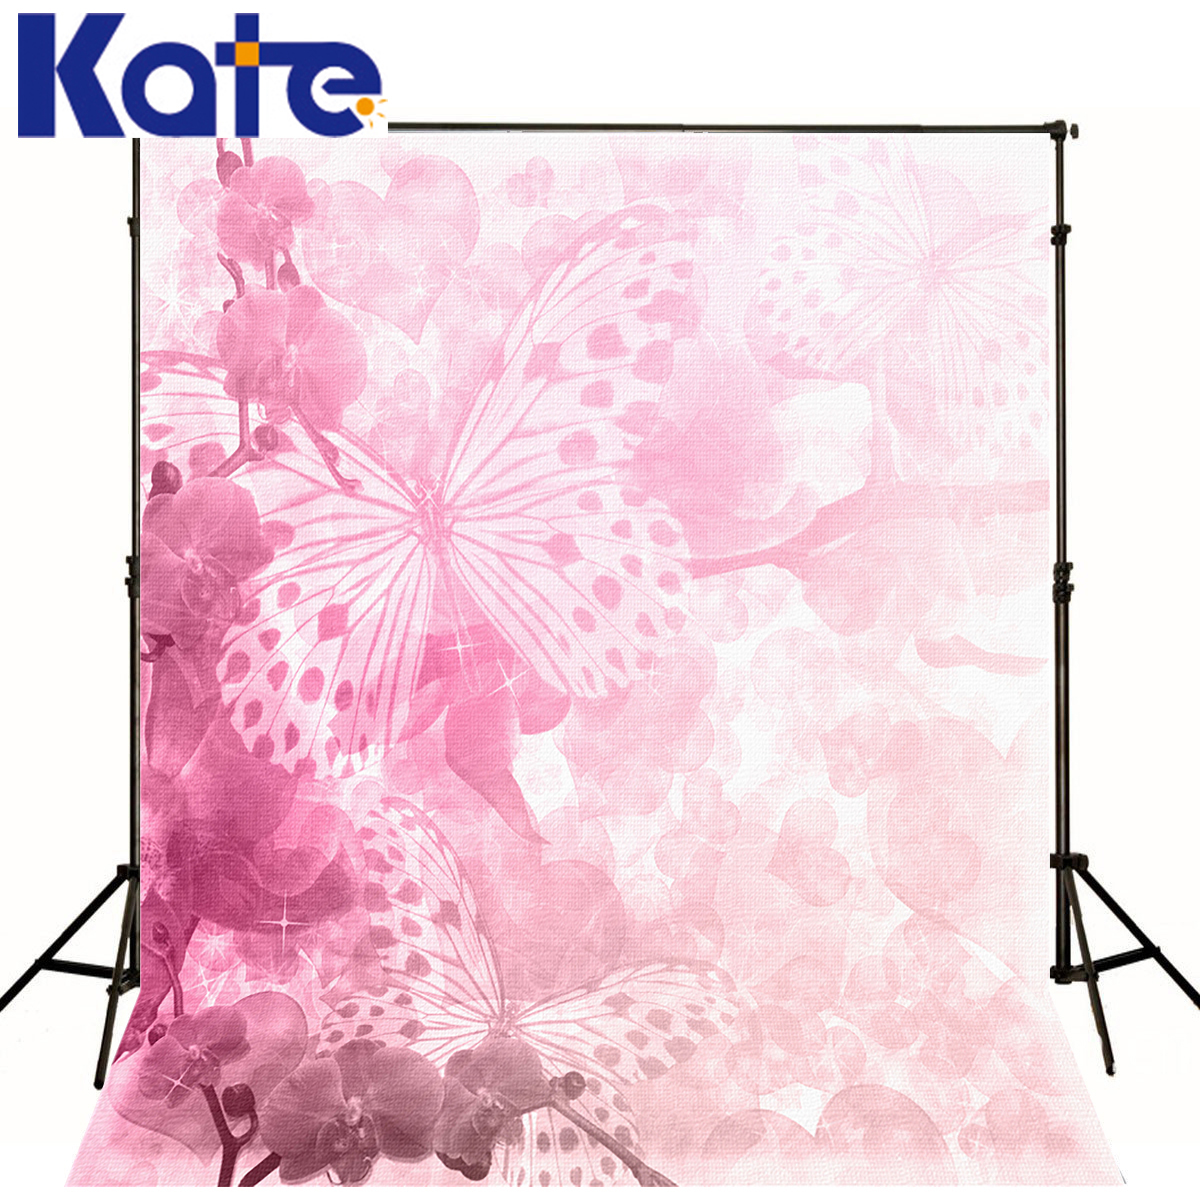 kate Photographic background Butterflies love pink No creases fabricbackdrops princess christmas 8 x 8 ft сумка kate spade new york wkru2816 kate spade hanna